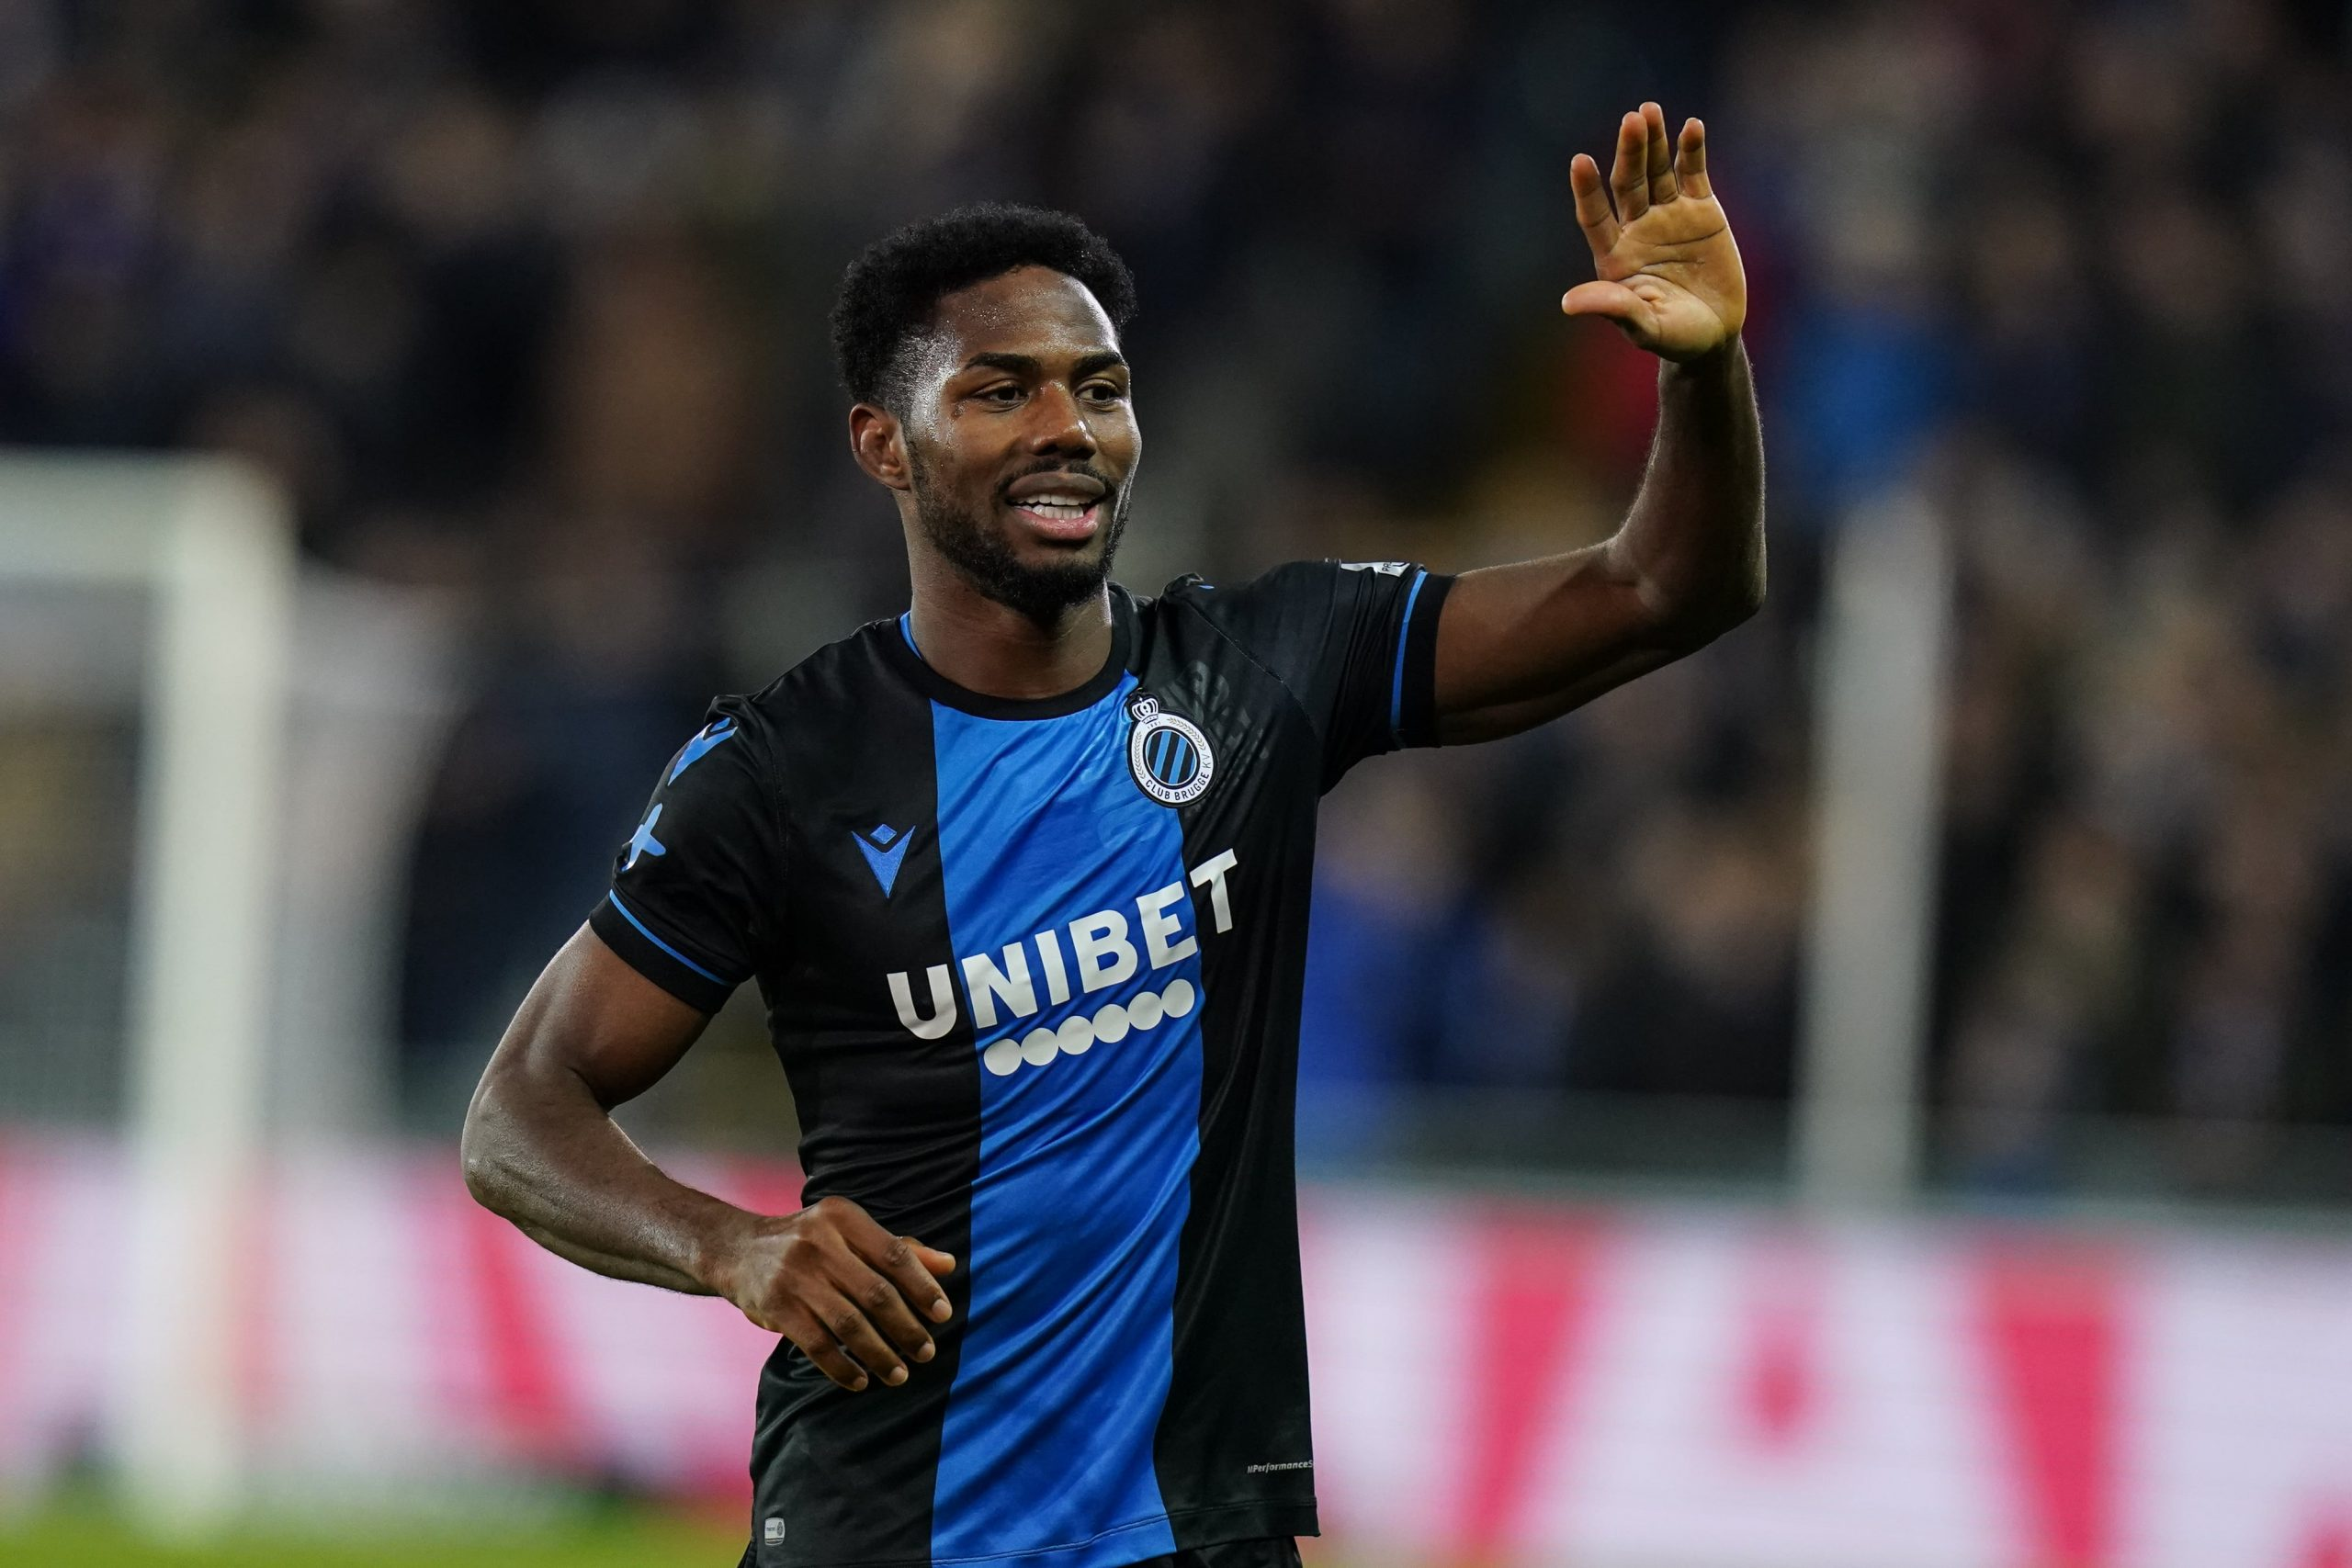 UCL: Dennis Bags Assist In Club Brugge's Win; Ighalo Subbed On As Man United Lose To PSG